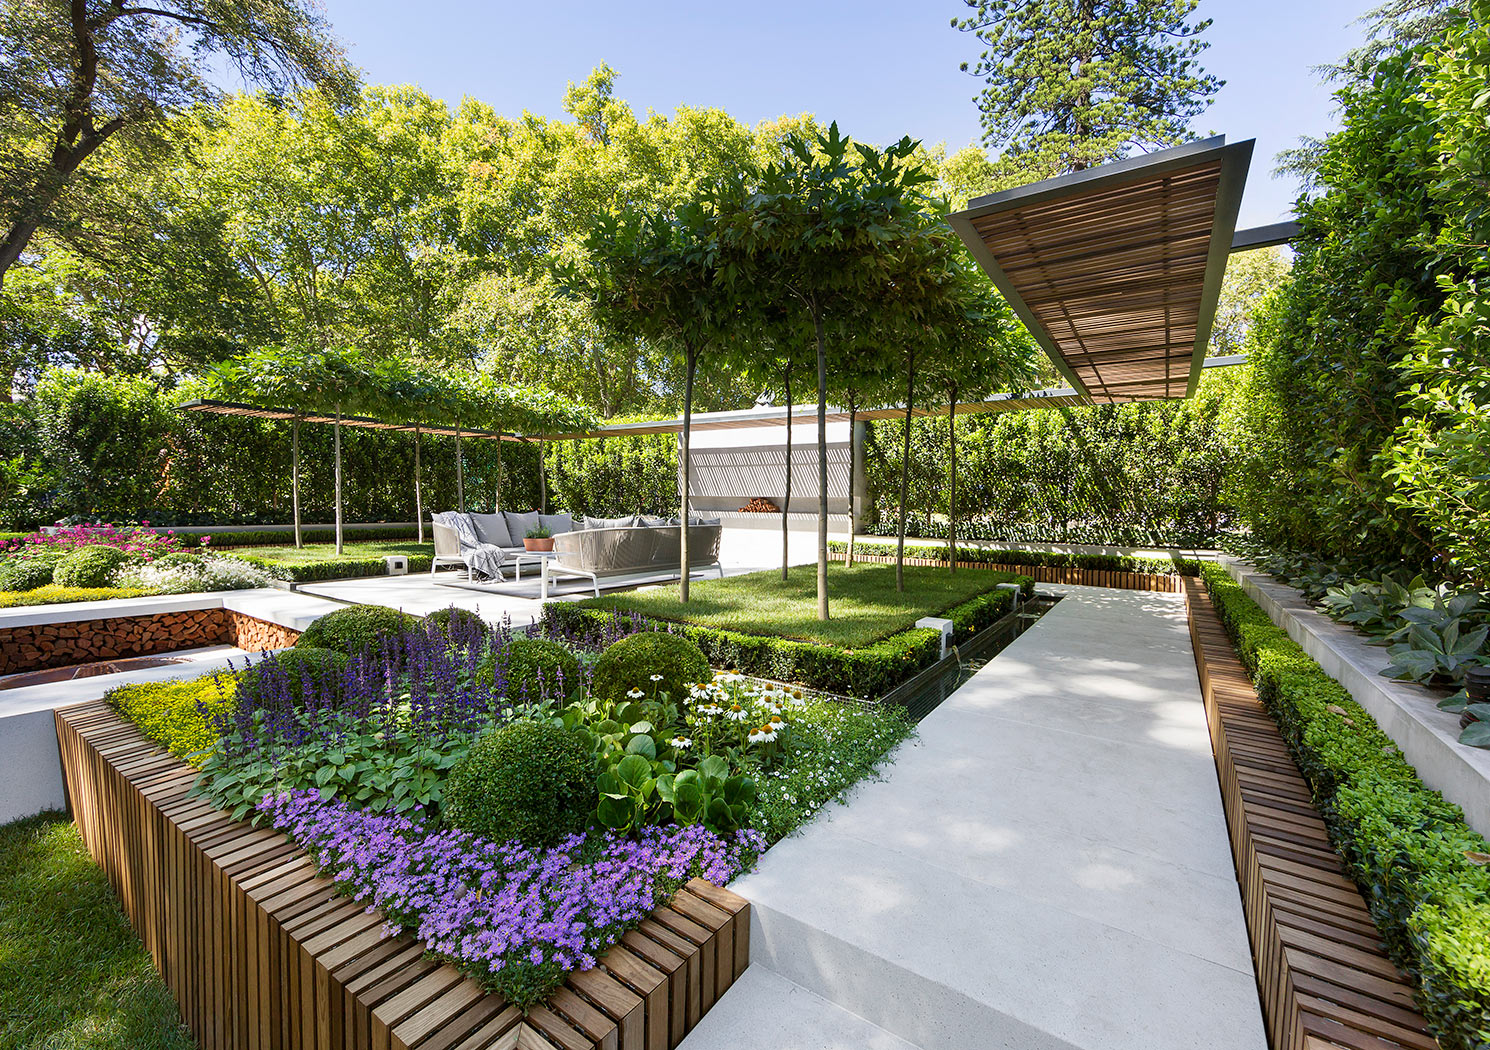 Landscape design melbourne nathan burkett design for Design in garden